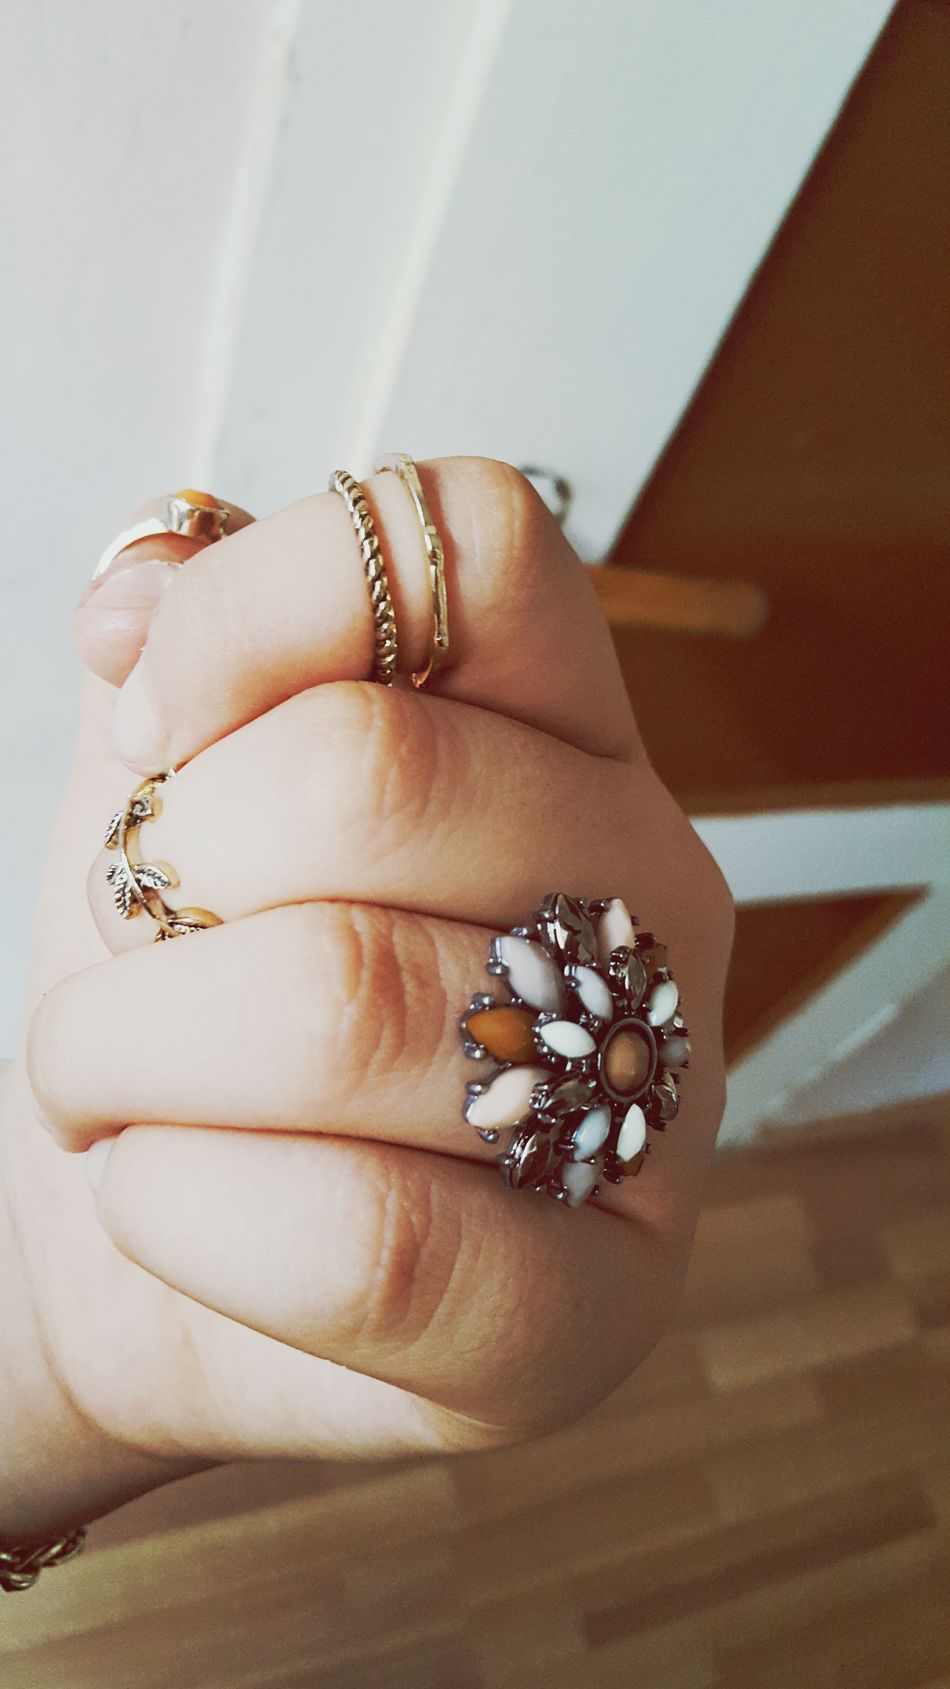 Rings♥ Lord Of The Rings Vintage Fashion Flowers EyeEm Best Shots Enjoying Life Simple. Smart Simplicity Simple Photography Pretty♡